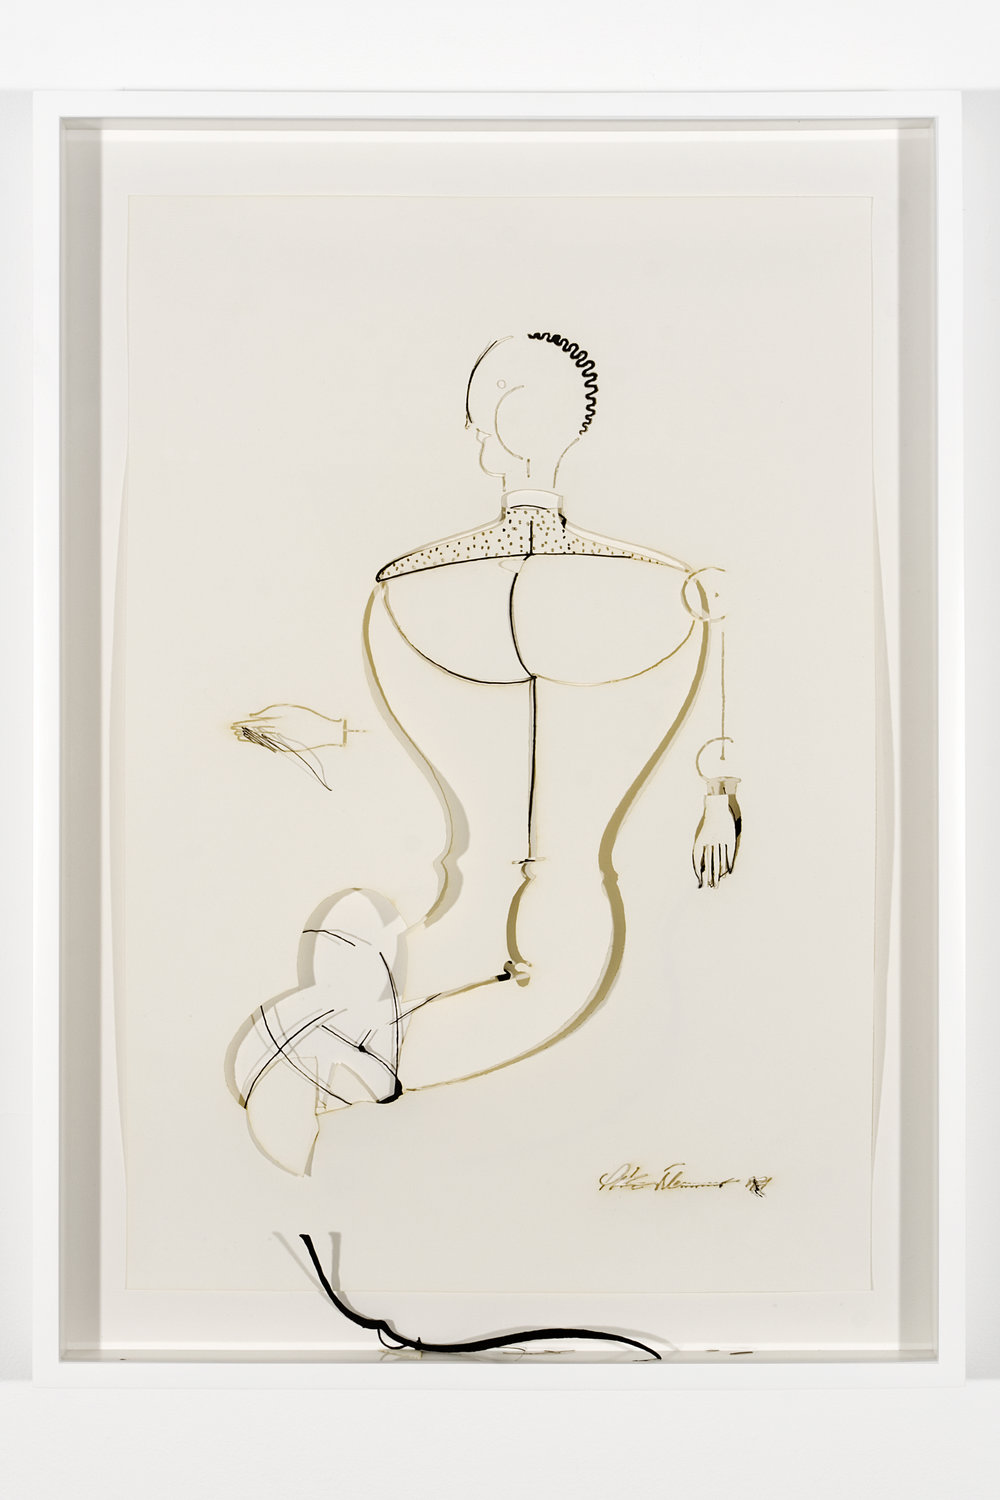 """Collapsed Drawing: """"Abstrakte Figur, Kopf Mach Links"""" (Oskar Schlemmer), 2007 laser-cut paper and laser-cut archival digital print mounted on museum board 72,5 x 52,2 cm - 28 1/2 x 20 1/2 inches (framed)"""